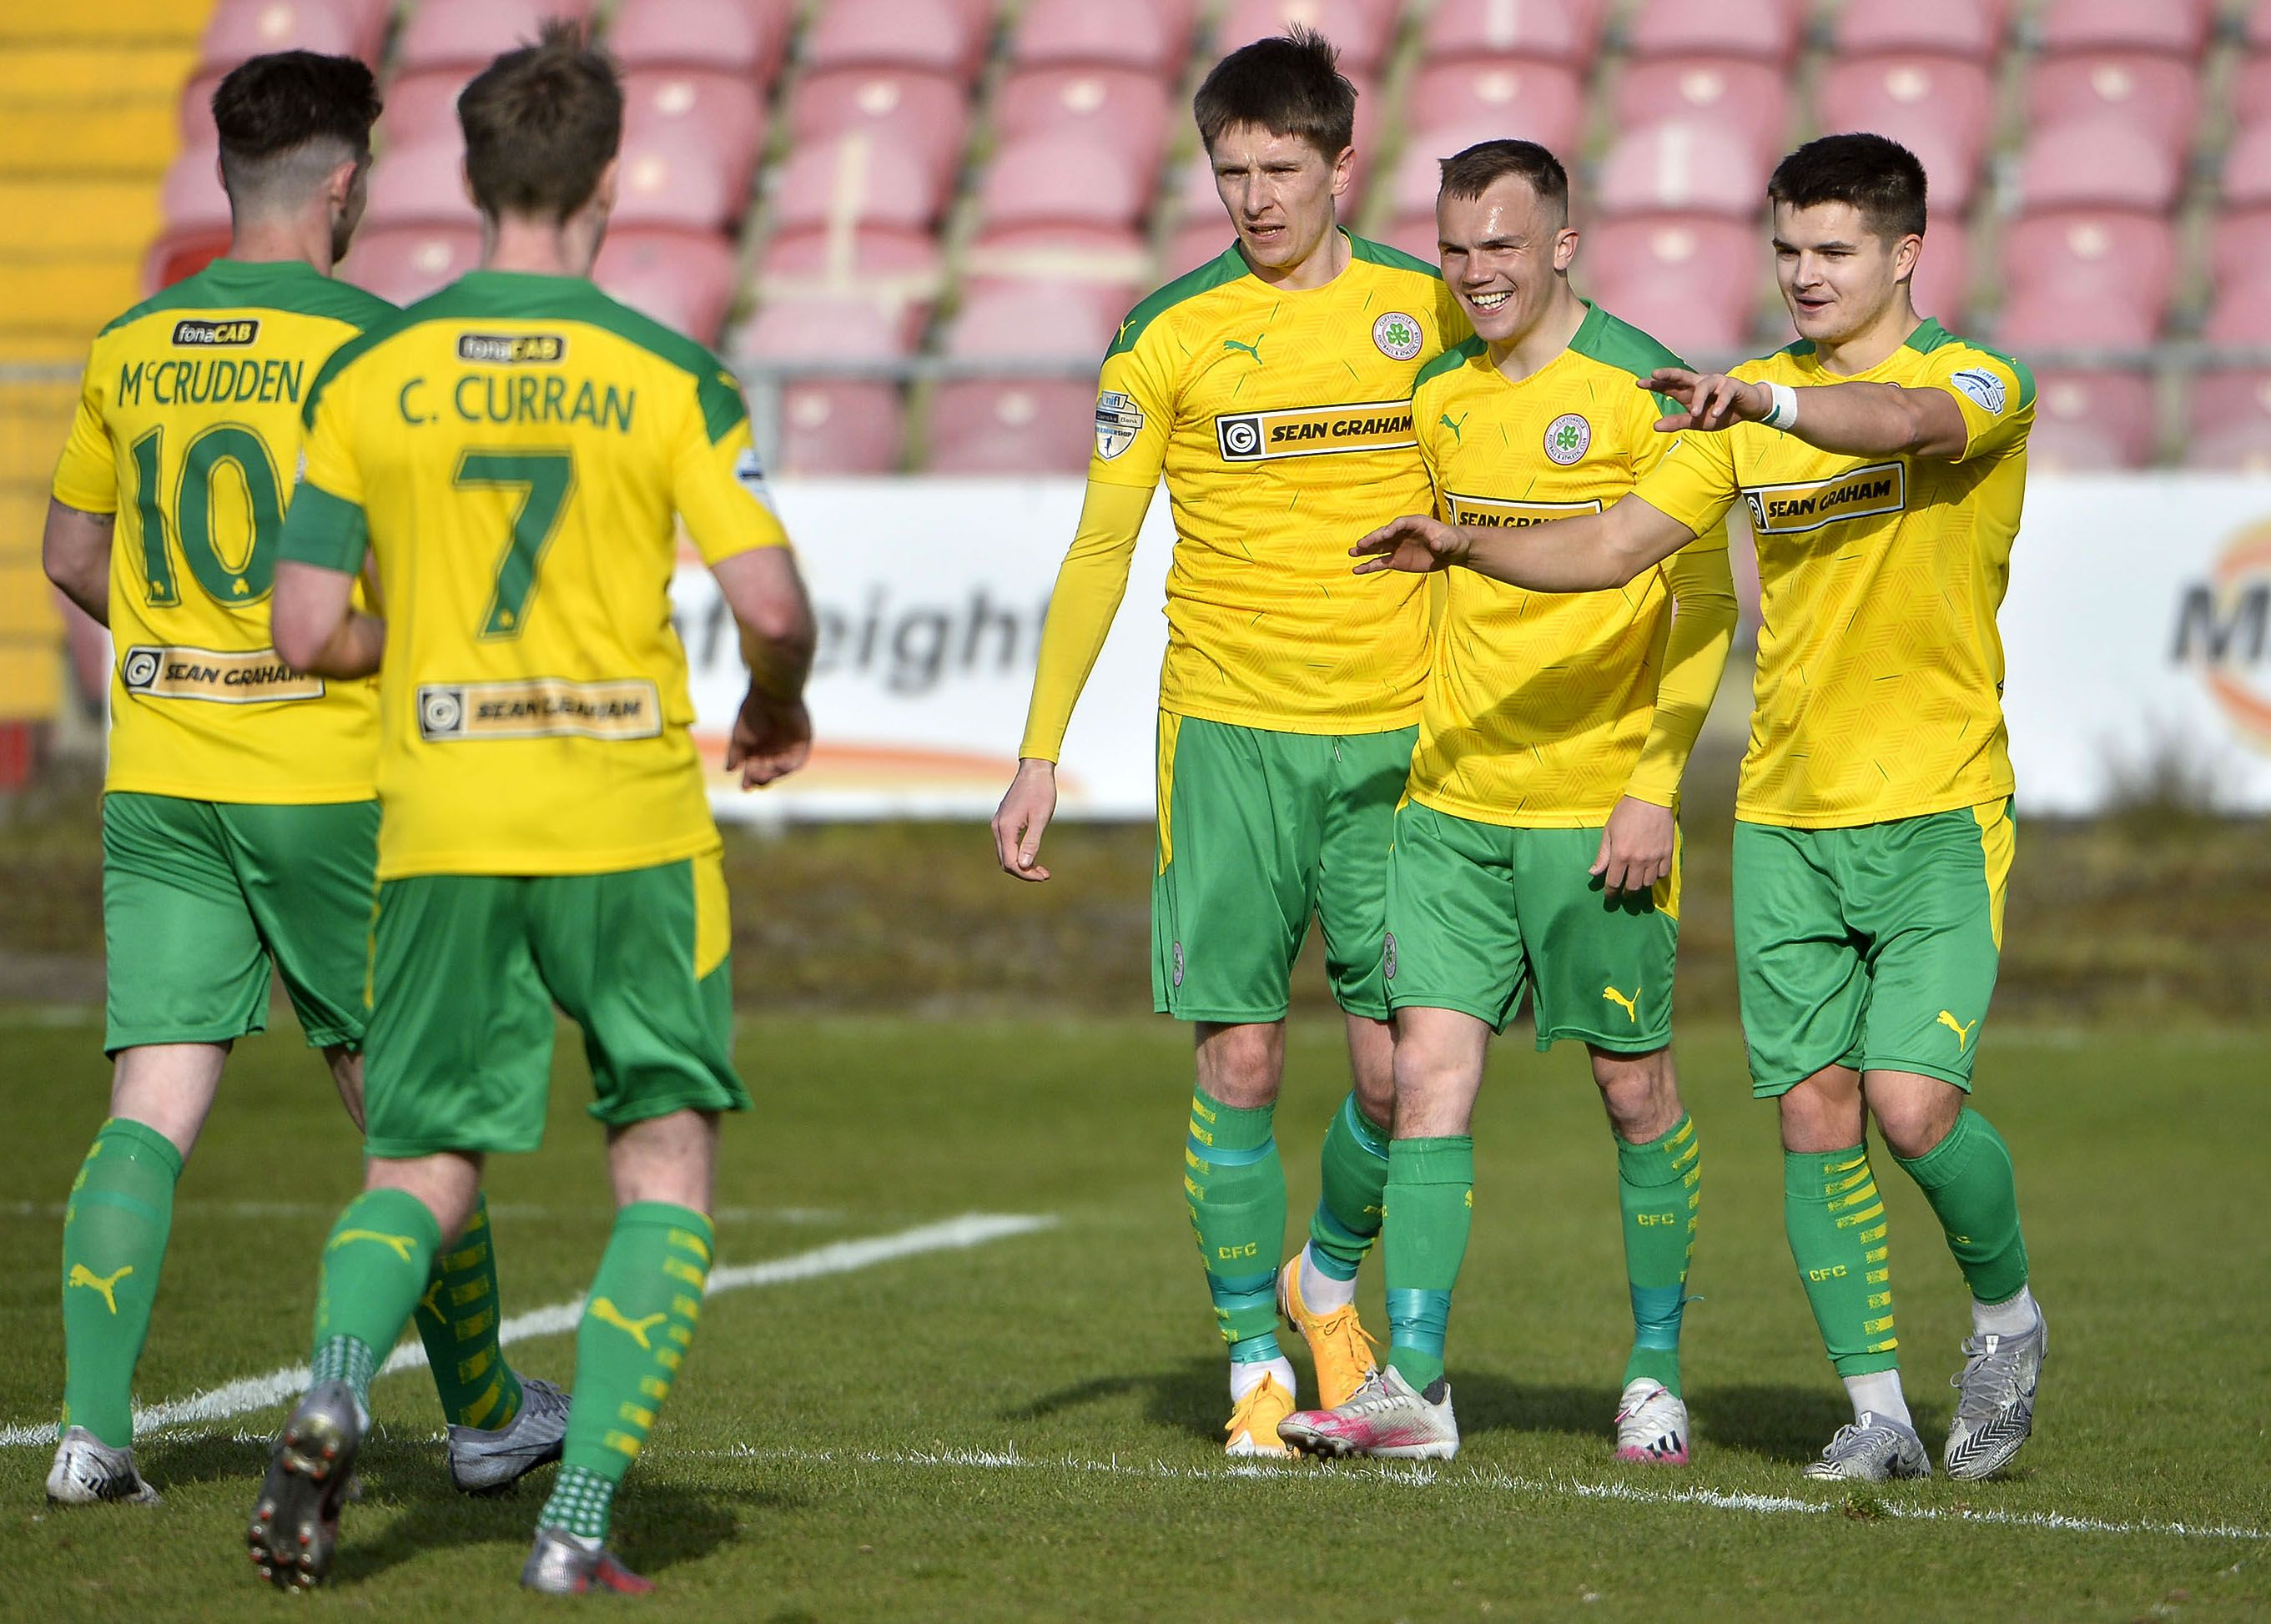 Cliftonville\'s Ryan Curran celebrates after finding the net against Portadown and his first half brace was enough to secure all three points at Shamrock Park